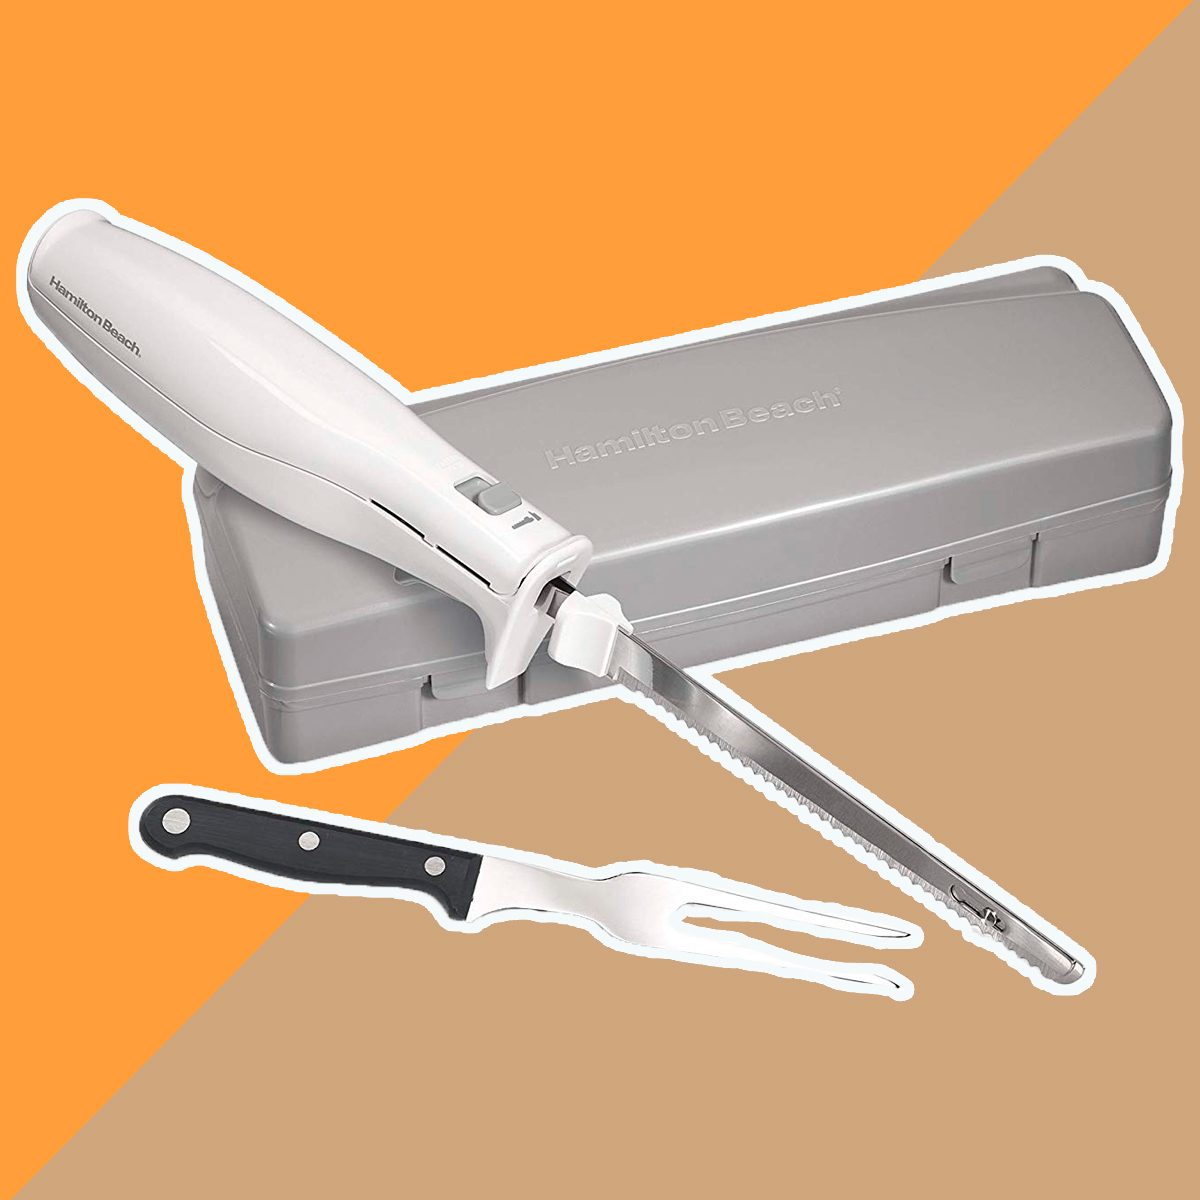 Hamilton Beach Electric Knife for Carving Meats